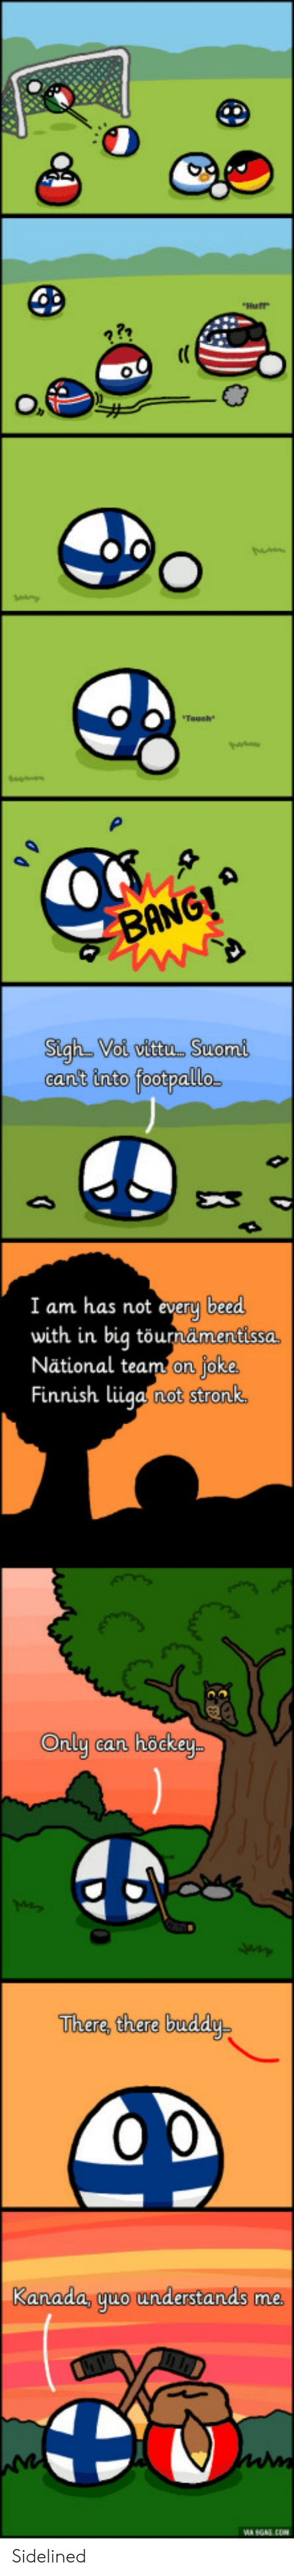 Eant: eant into footpallo.  I am has not everu beed  with in big to  Nätional team on ioke  Finnish lü  urnämentissa  iga not stronk  Only can höckay-  The鸡there buddy  Kanada. uuo uderstands me  MA SGAS.COM Sidelined